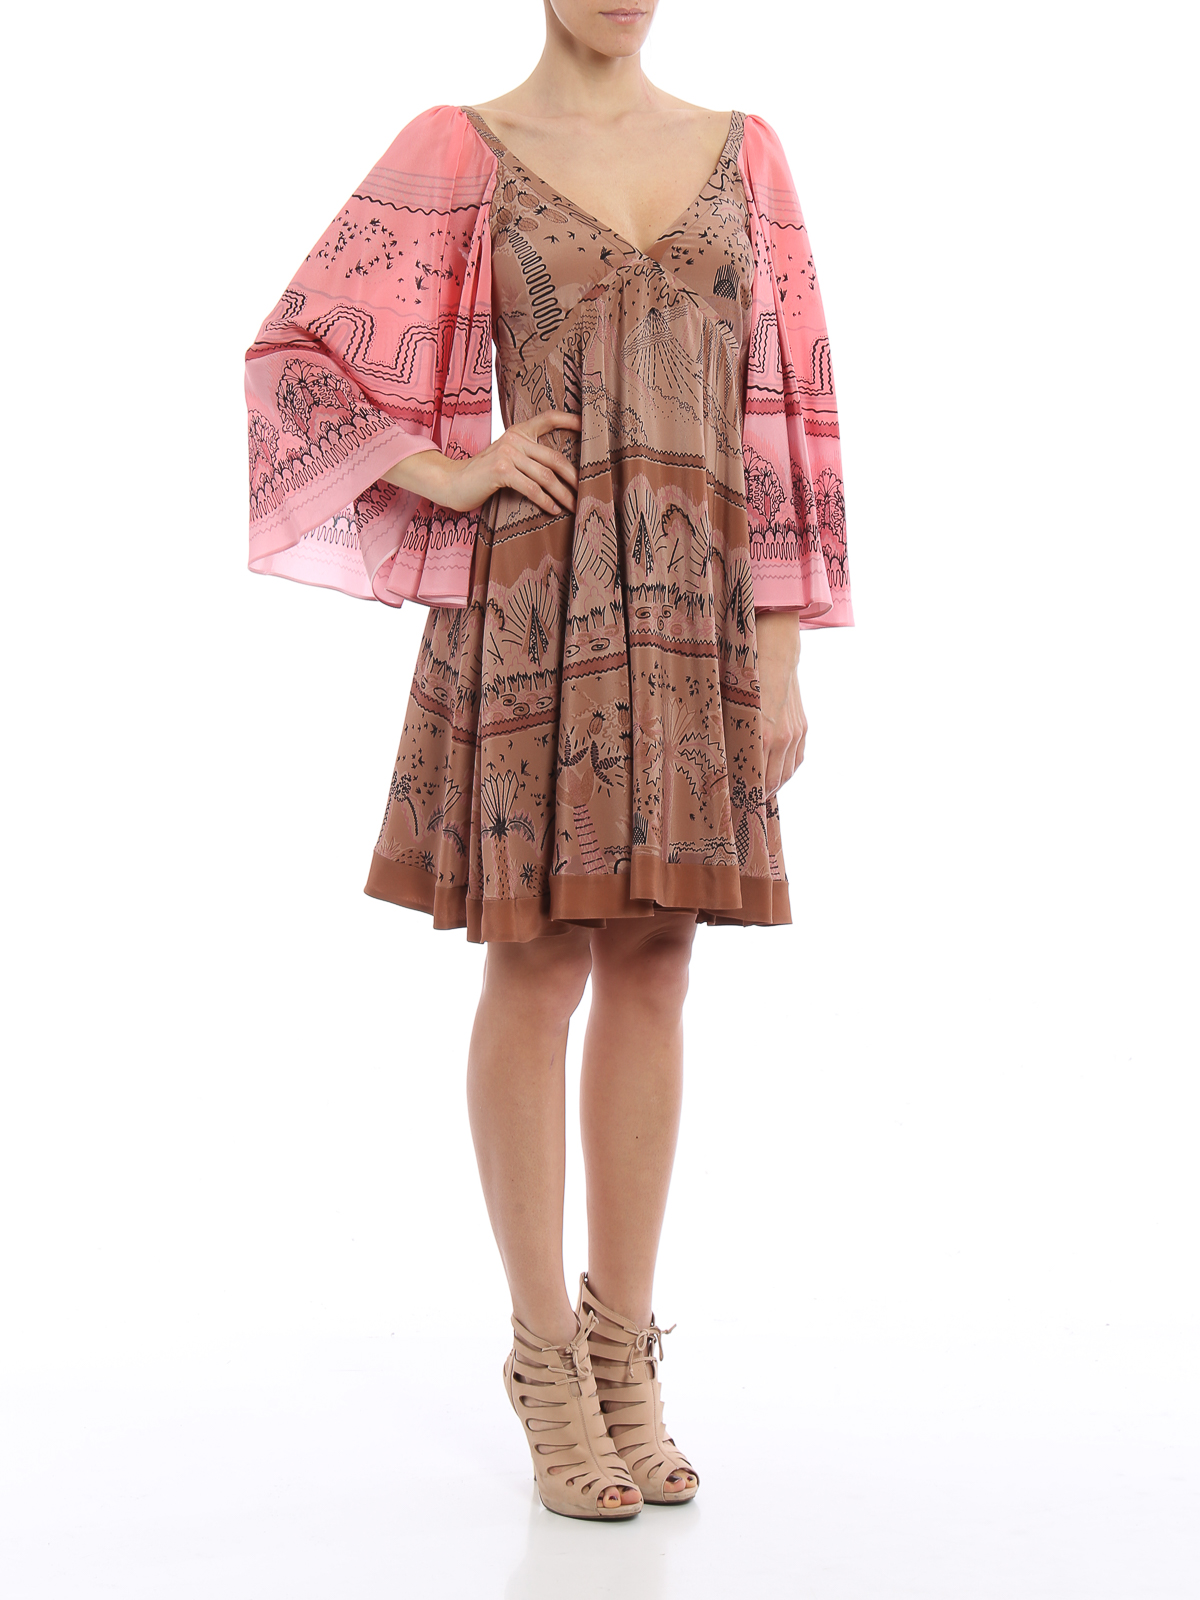 Lao silk clothing online shop